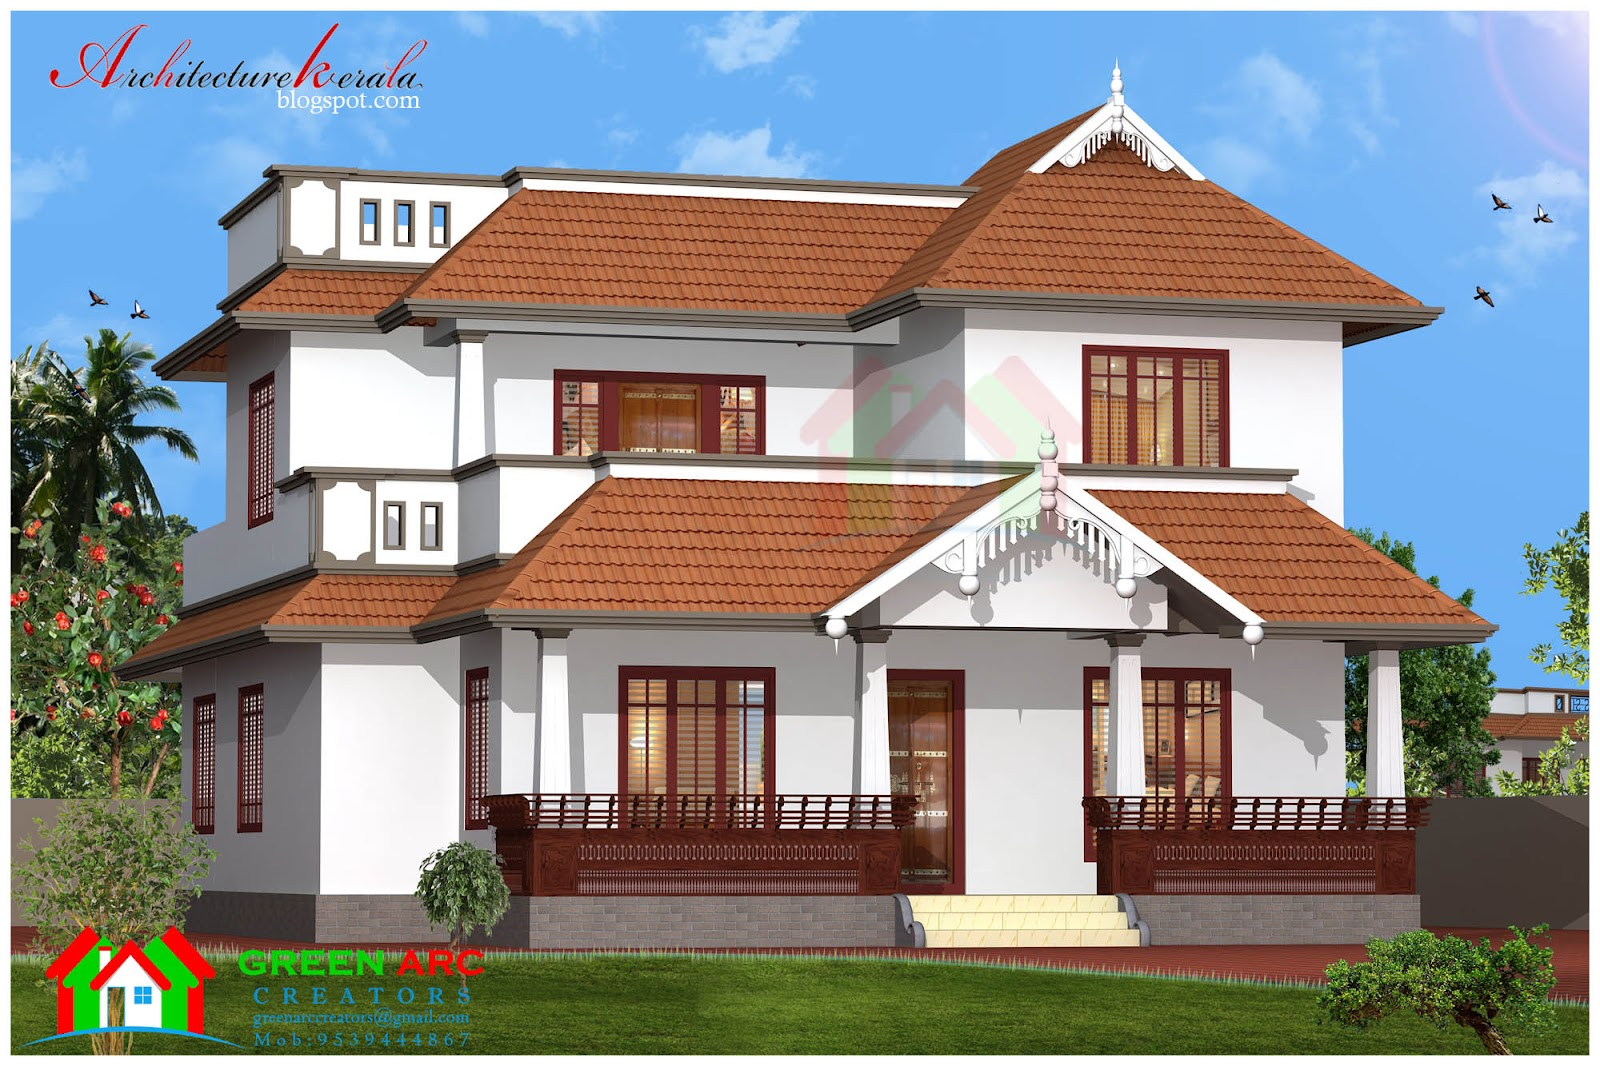 Architecture kerala traditional style kerala house plan for Traditional house architecture